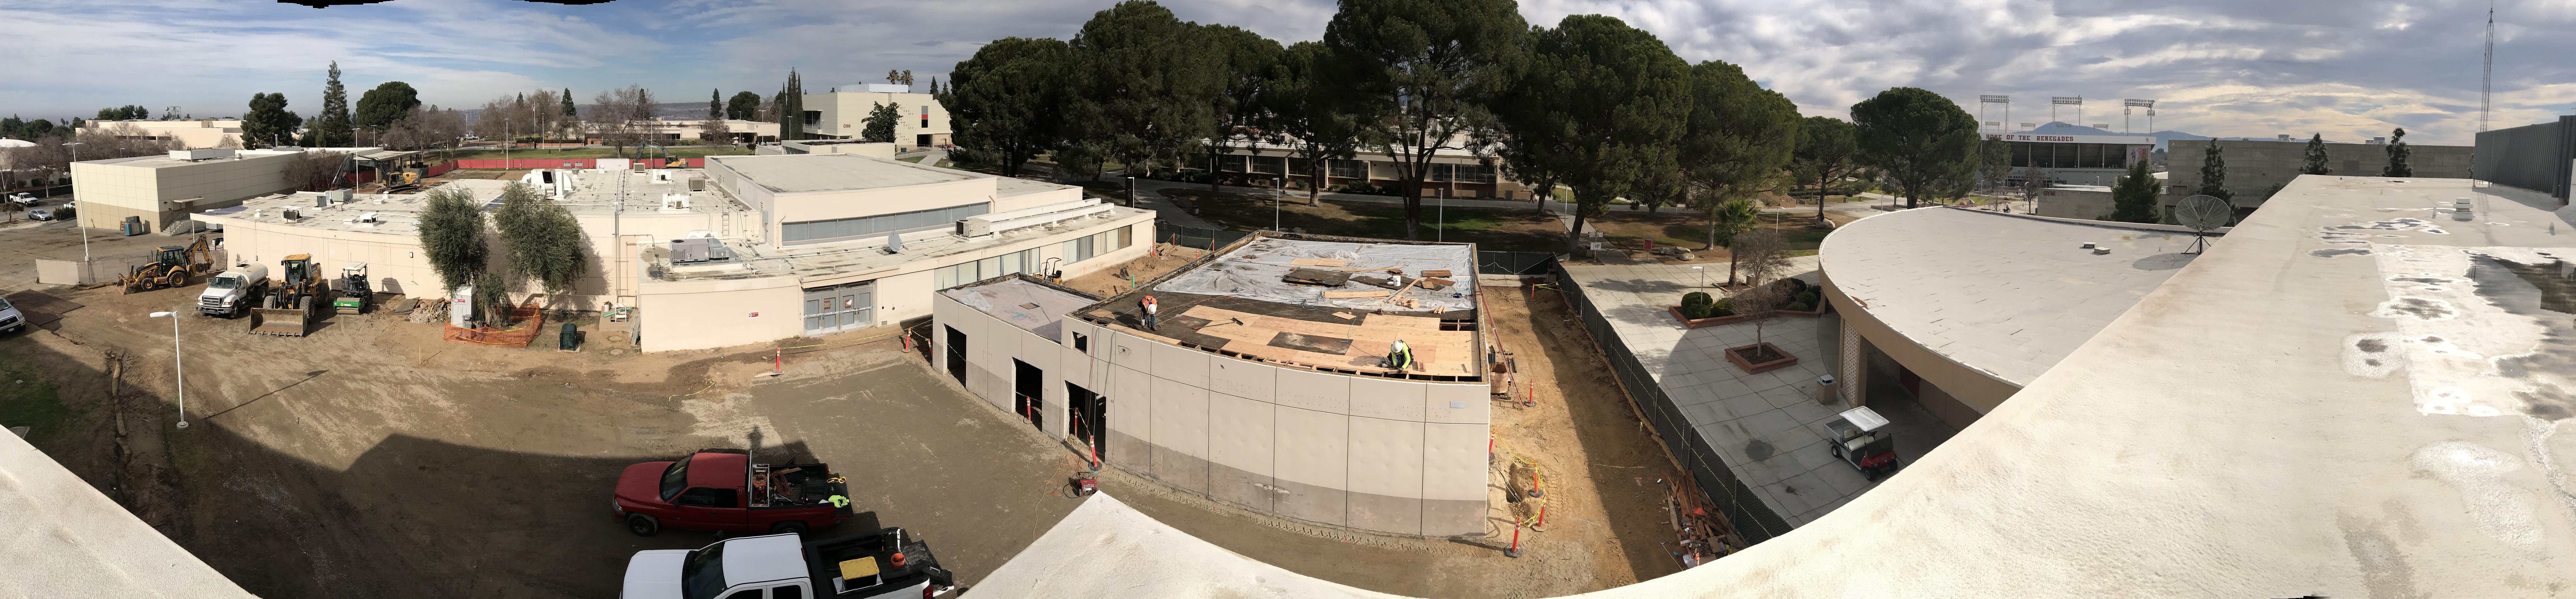 Panoramic view of the demolition of Campus Center